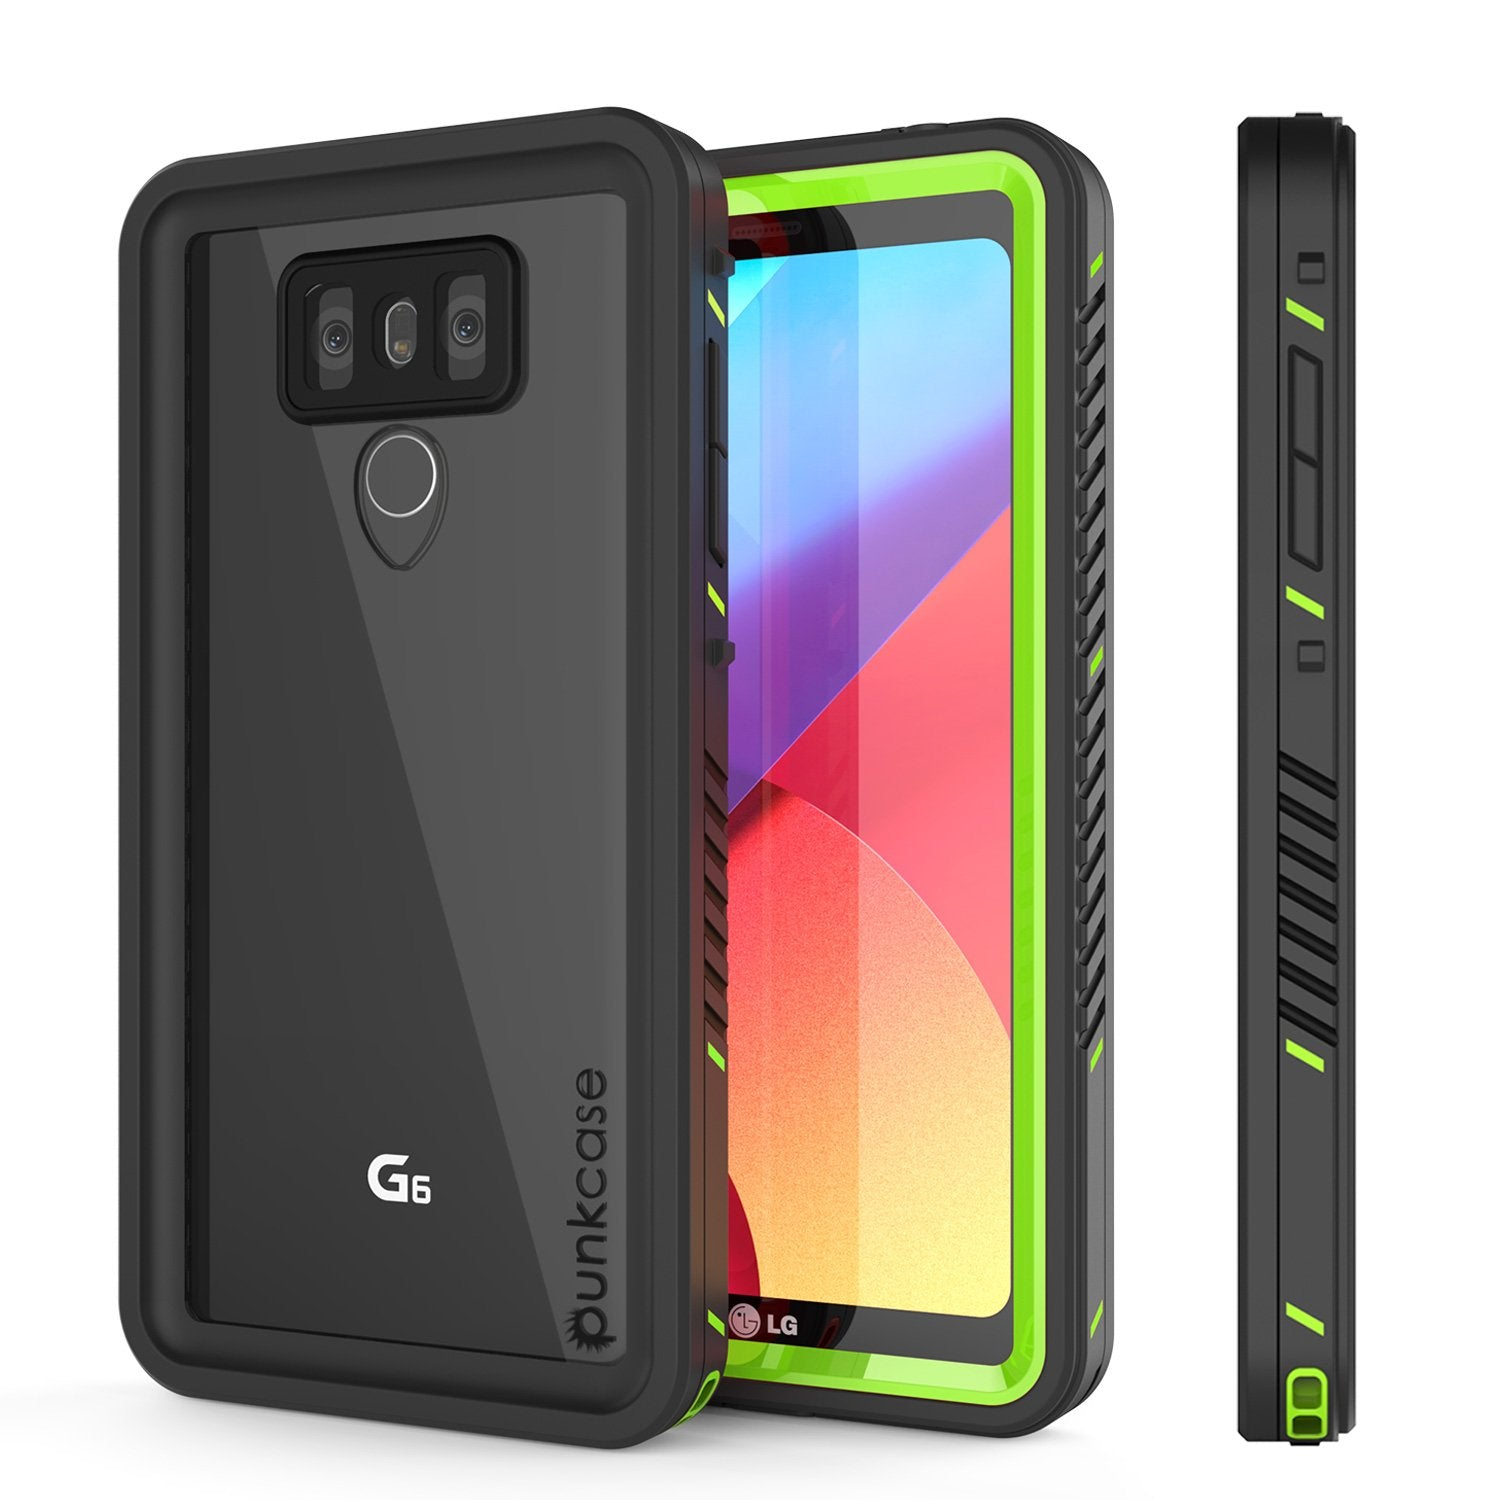 LG G6 Waterproof Case, Punkcase [Extreme Series] [Slim Fit] [IP68 Certified] [Shockproof] [Snowproof] [Dirproof] Armor Cover W/ Built In Screen Protector for LG G6 [GREEN]